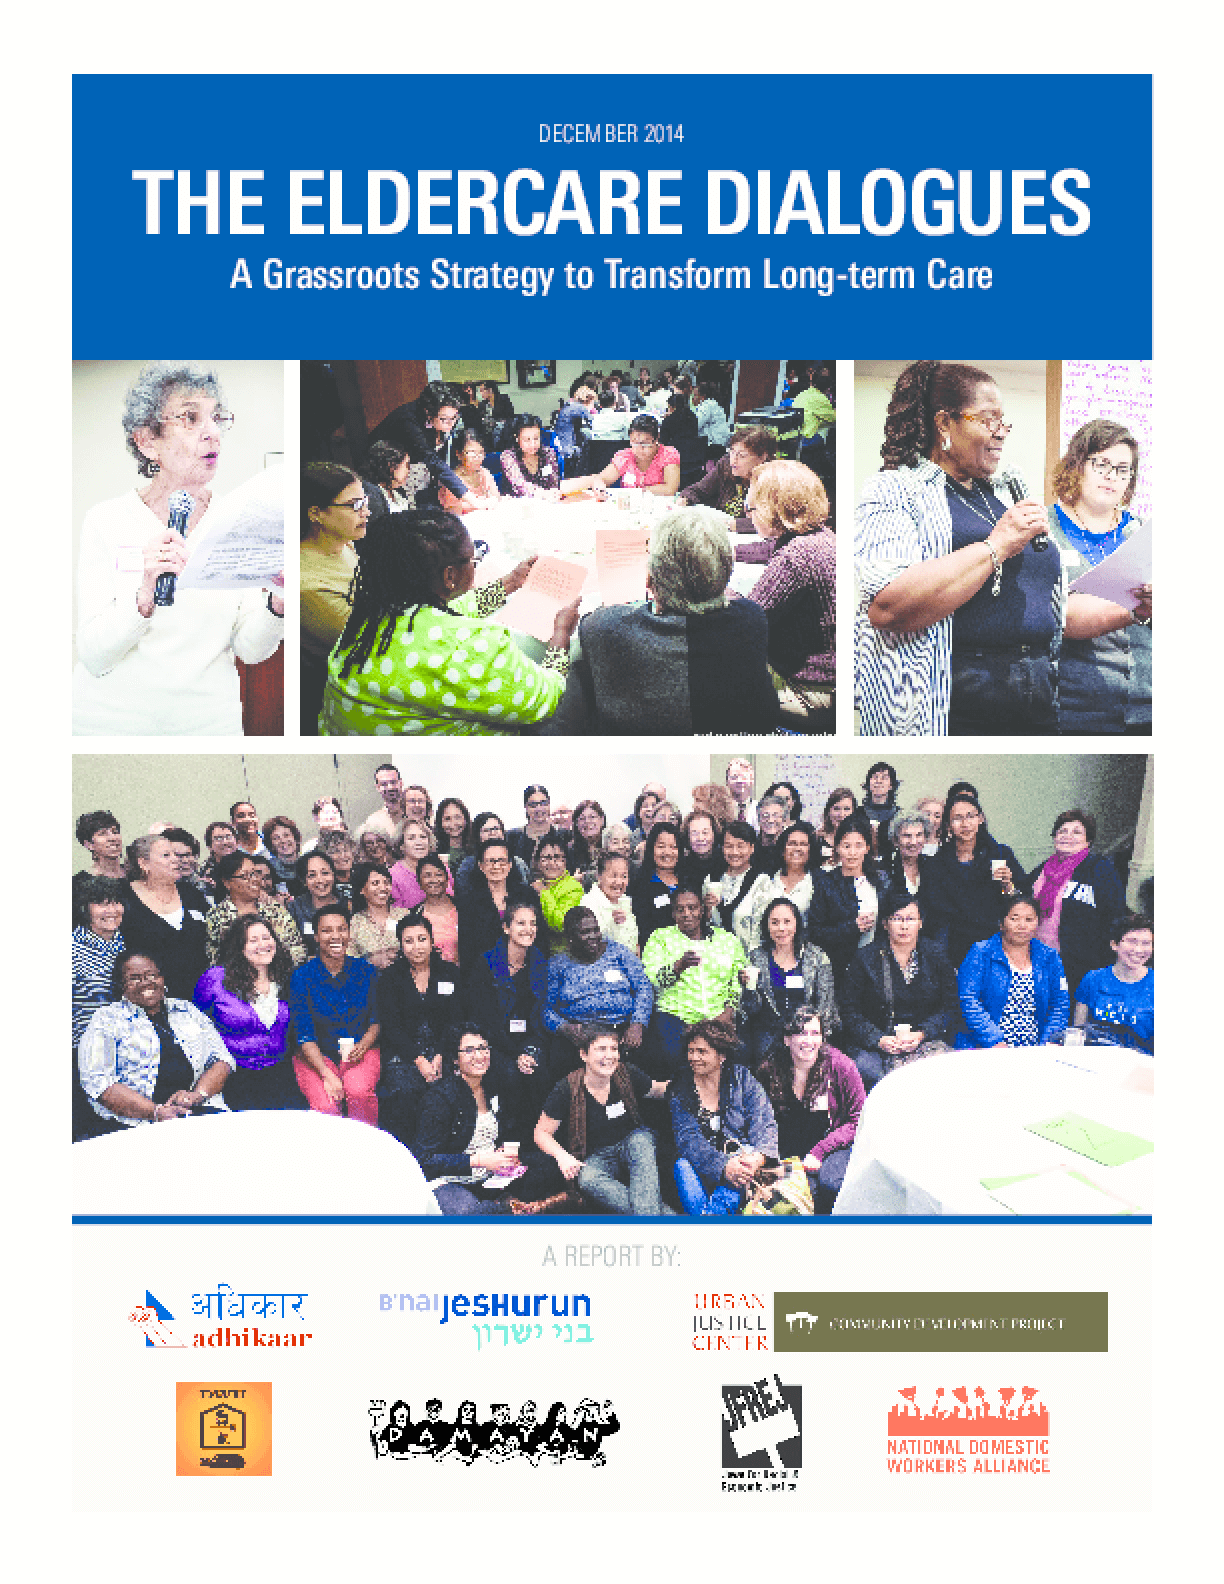 The Eldercare Dialogues: A Grassroots Strategy to Transform Long-Term Care